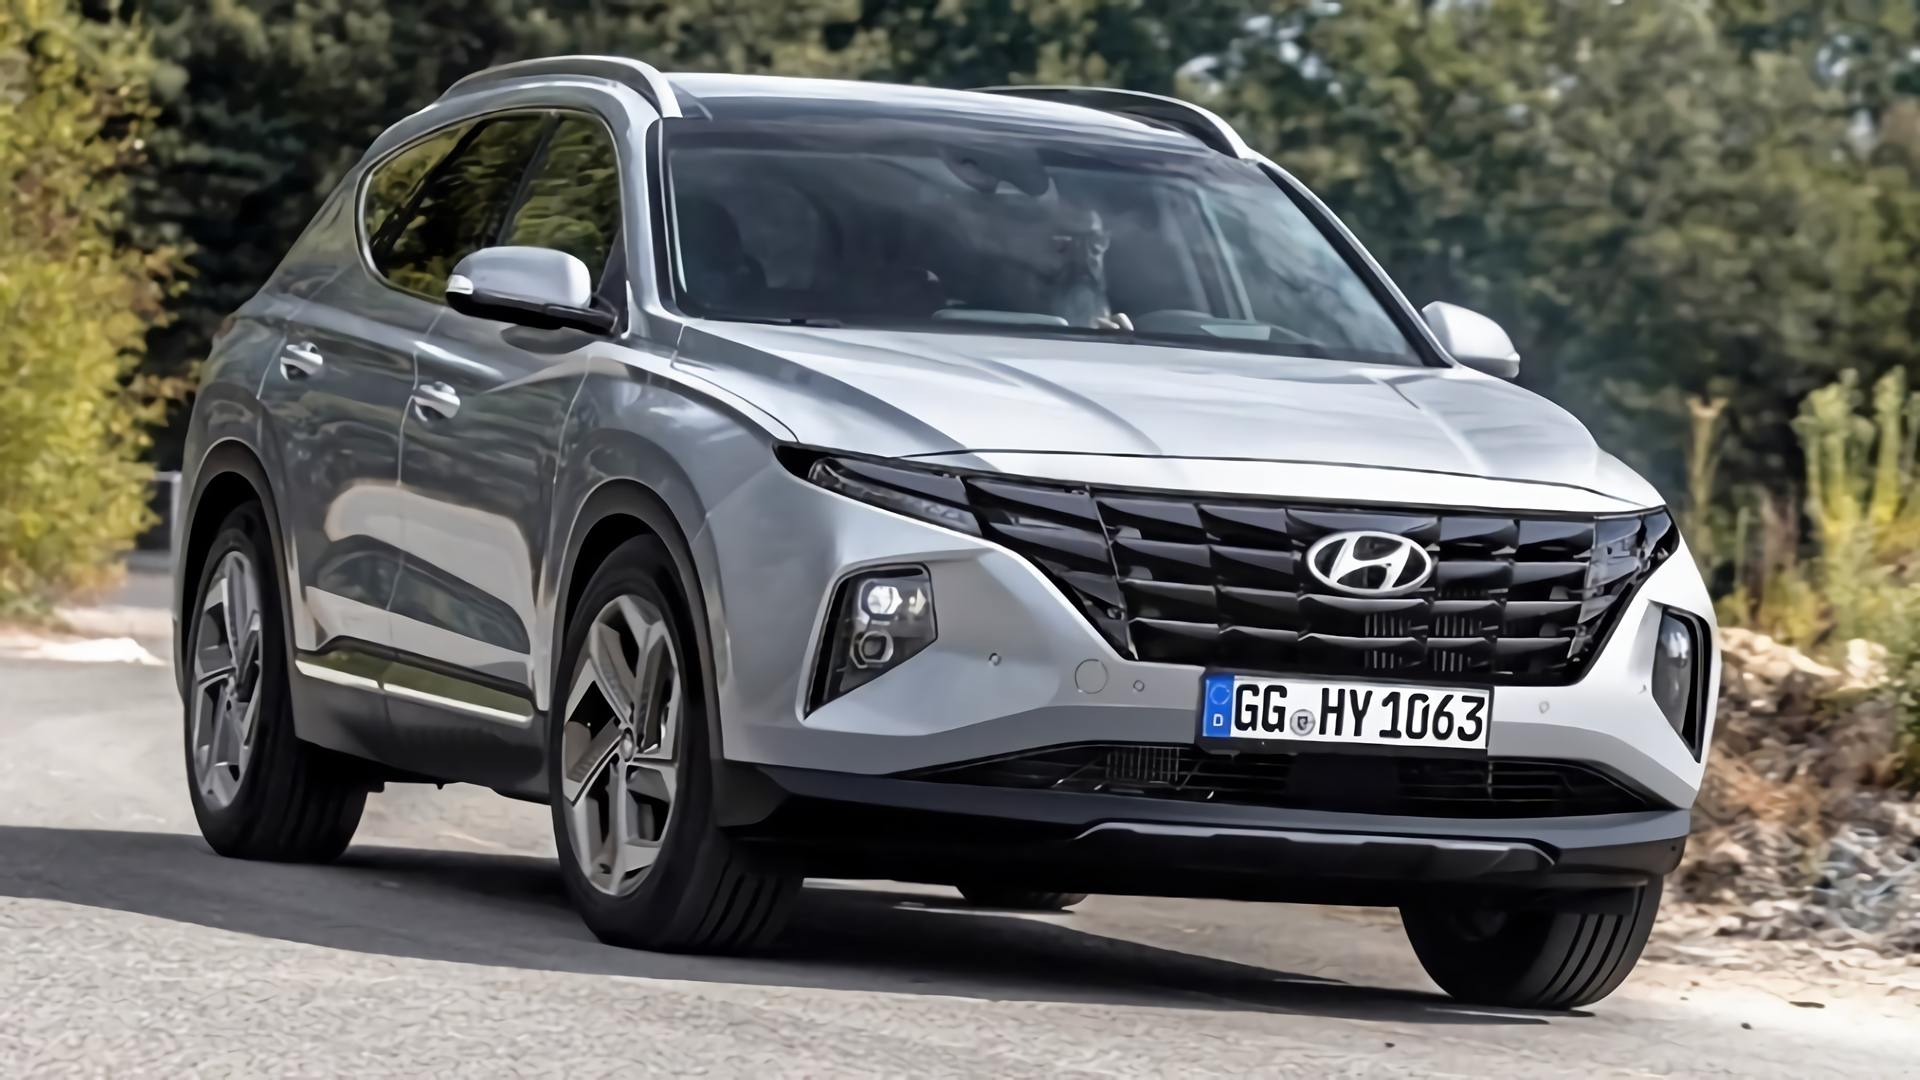 Hyundai Tucson 2021: Fresh Look & New Tech की तस्वीर